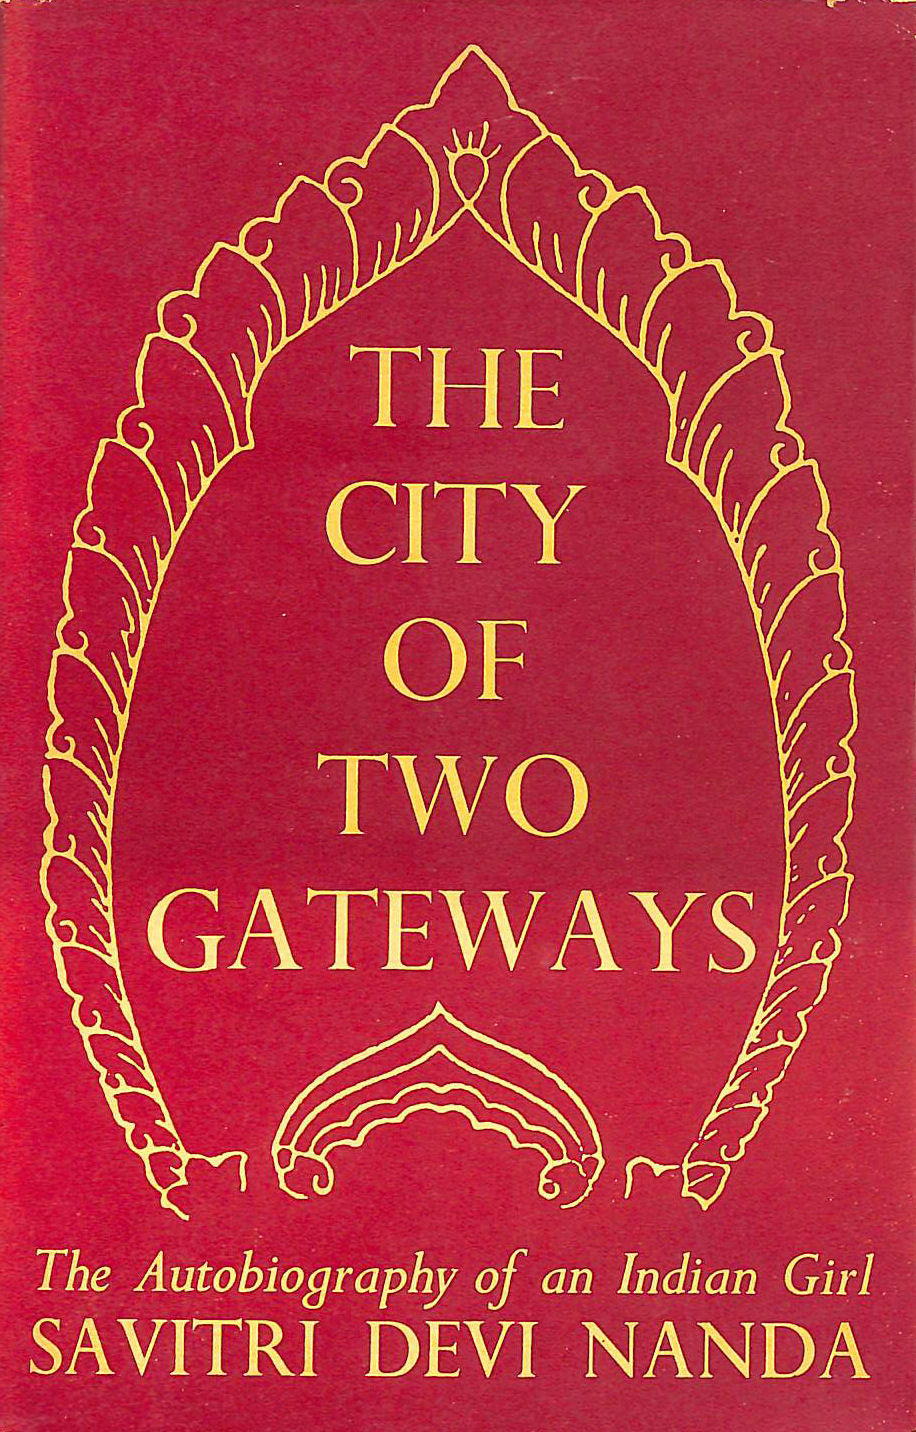 Image for The city of two gateways: The autobiography of an Indian girl